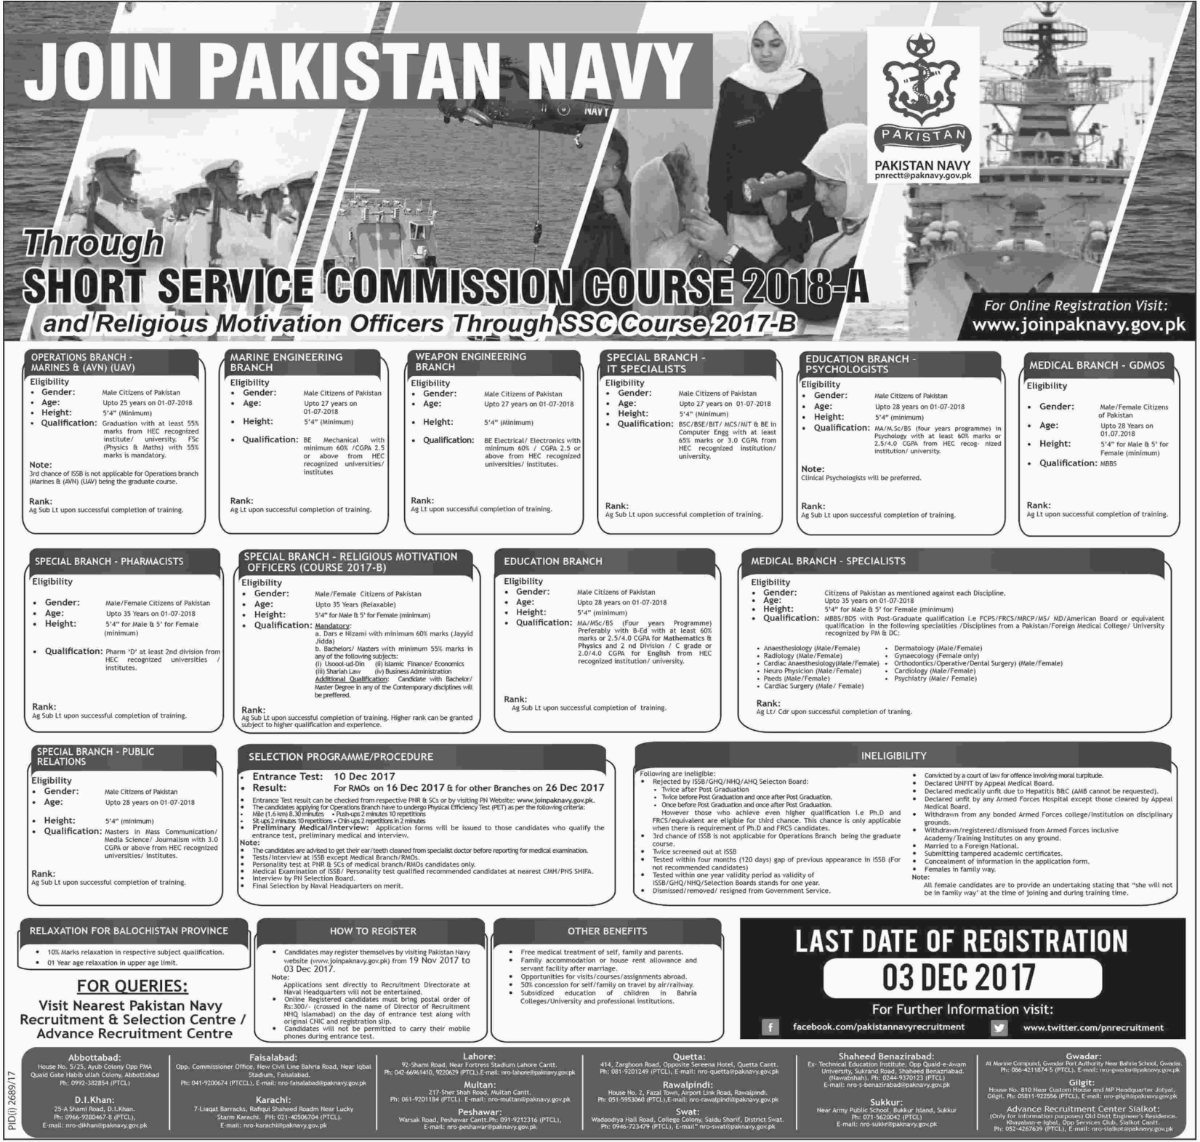 Pakistan NAVY Join Short Service Commission Course 2018 A